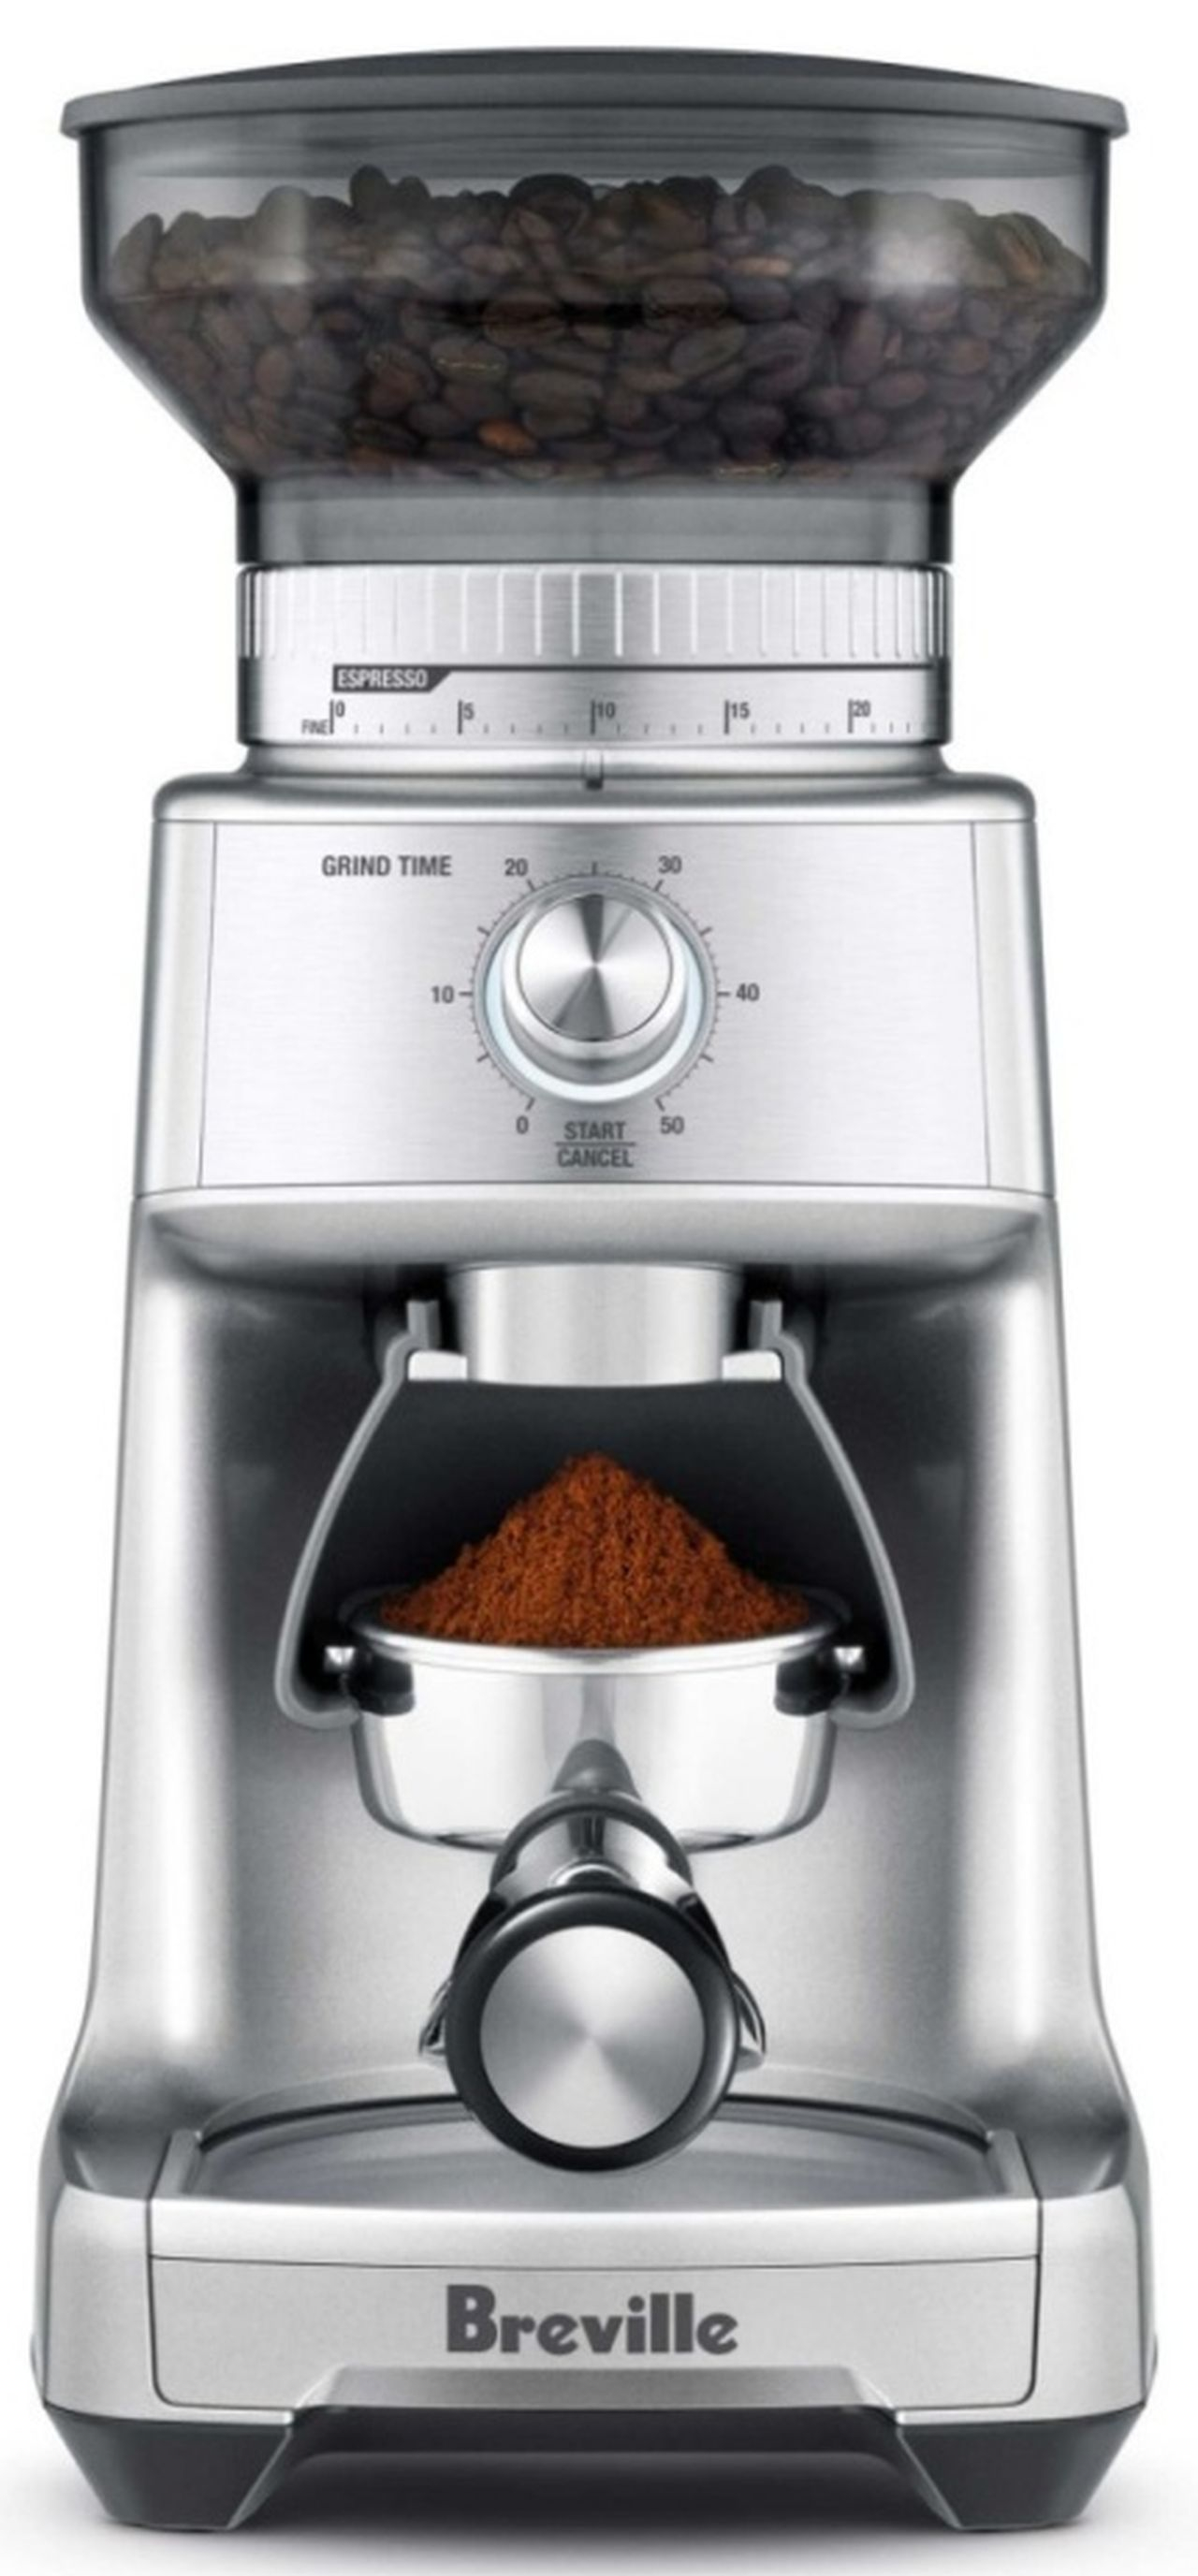 Breville - the Dose Control Pro Coffee Grinder in Silver